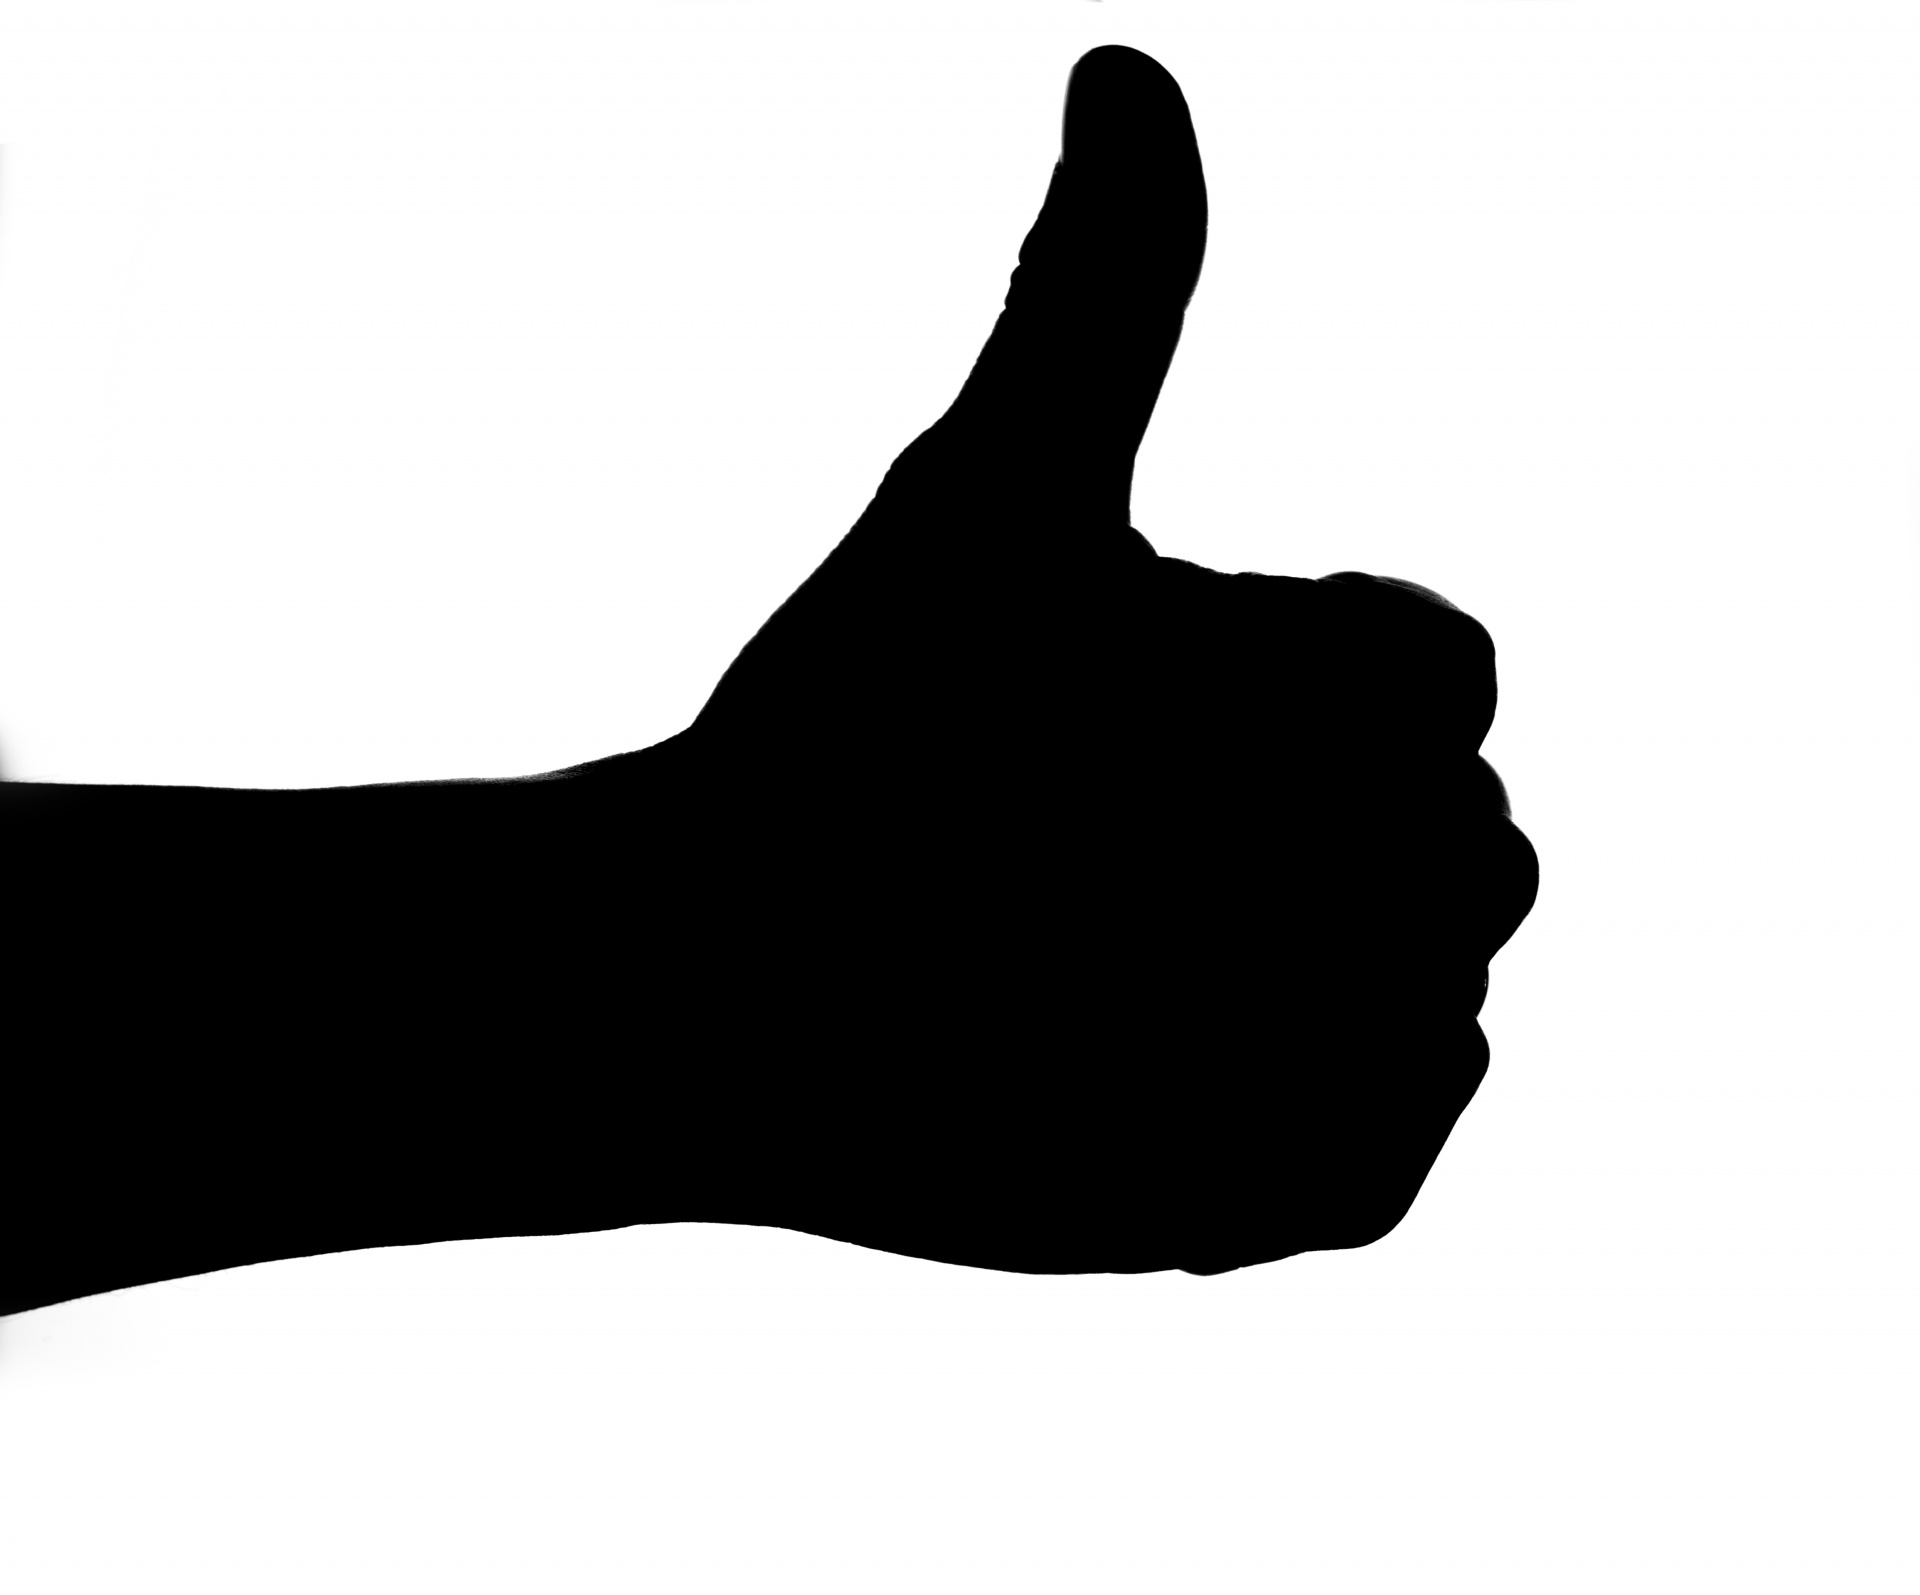 1920x1595 Silhouette Of Thumb Up Hand Free Stock Photo